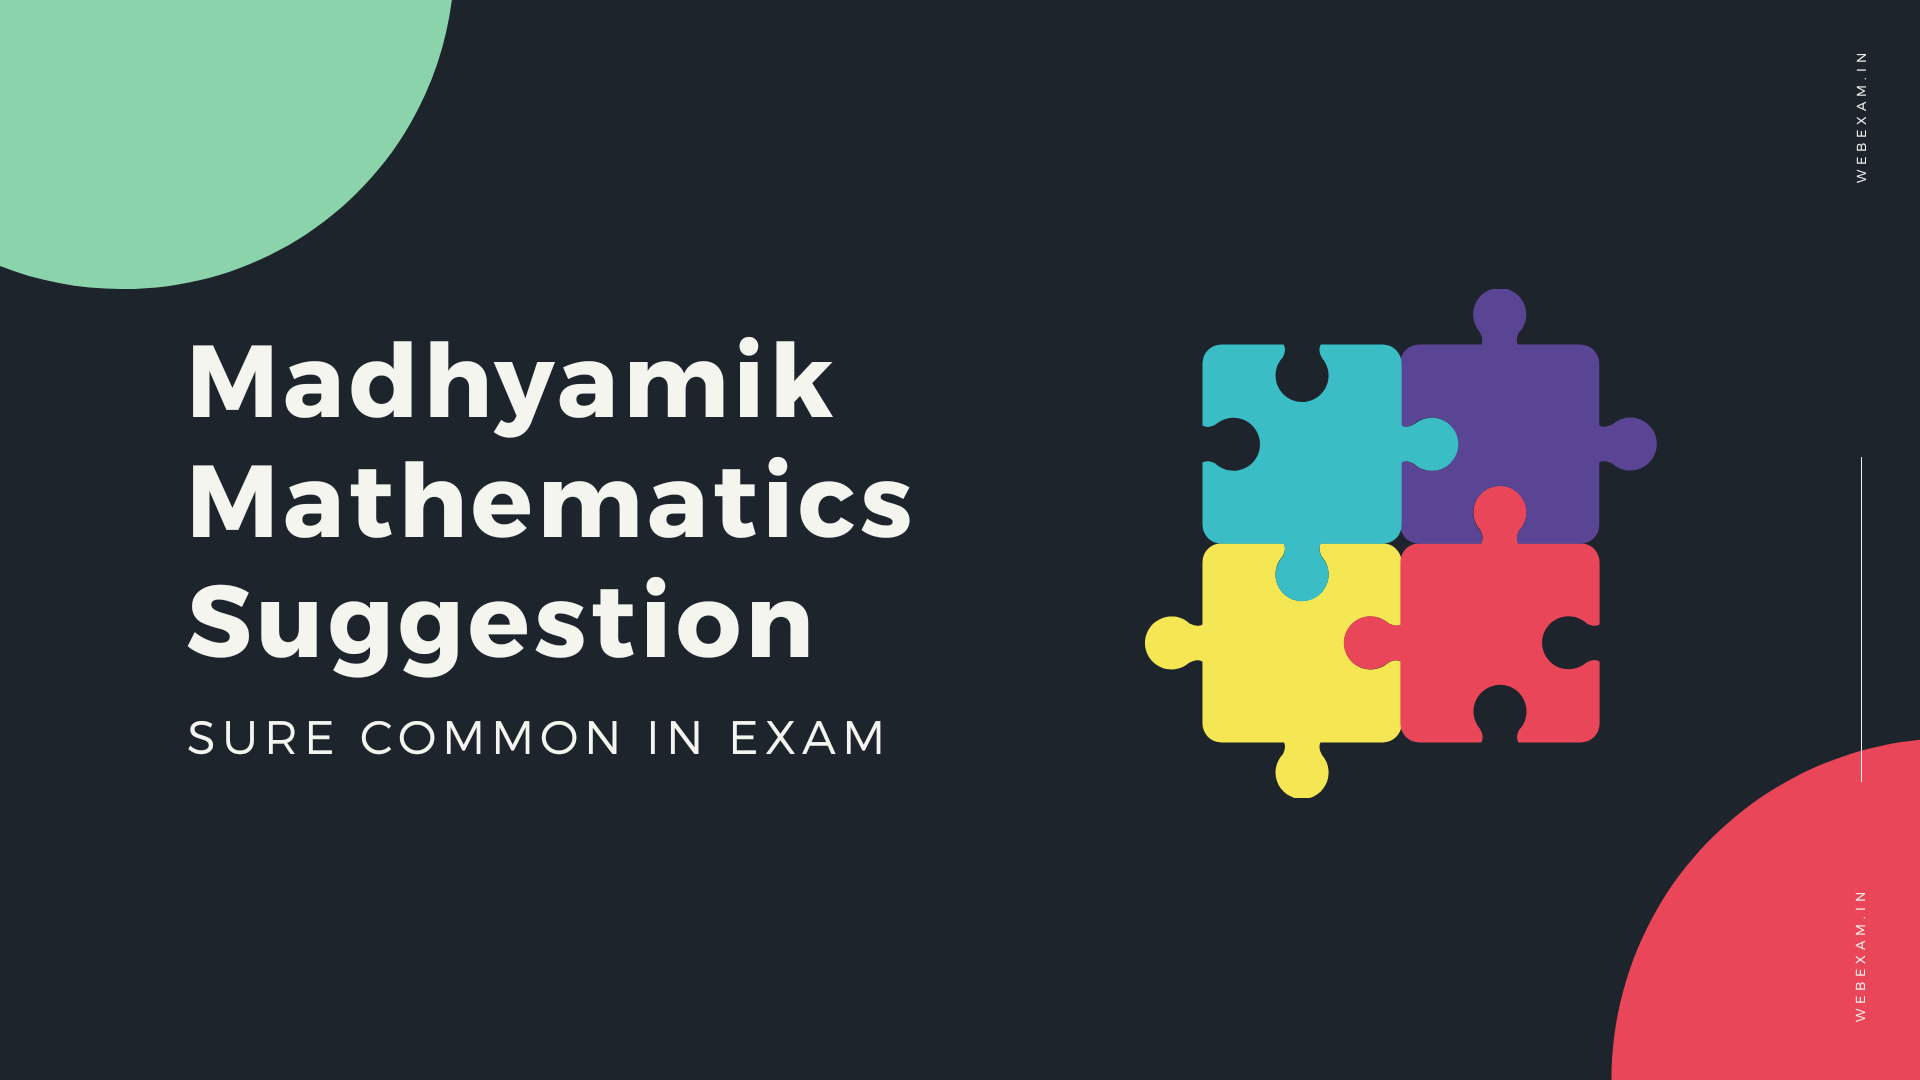 Madhyamik Mathematics Suggestion 2021